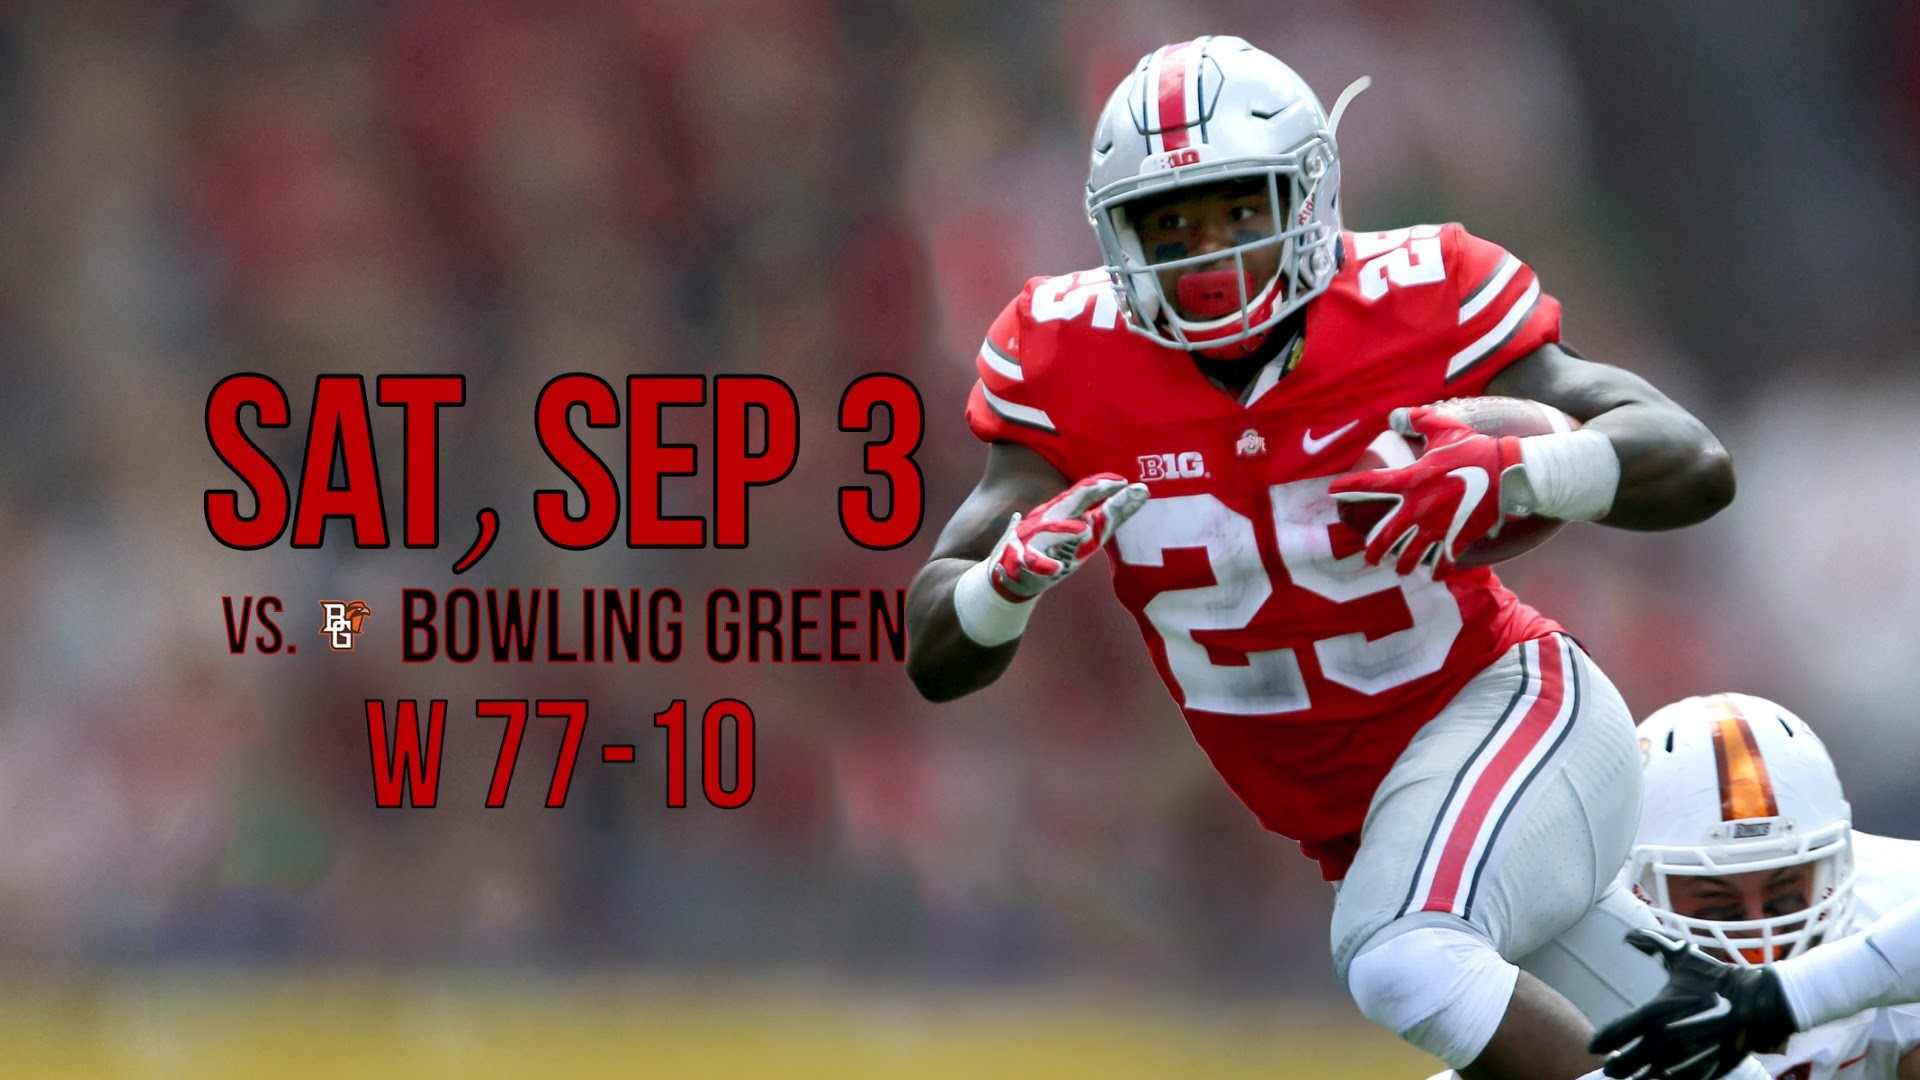 2016 Ohio State Buckeyes – Schedule & Scores (as of 9-12-16)